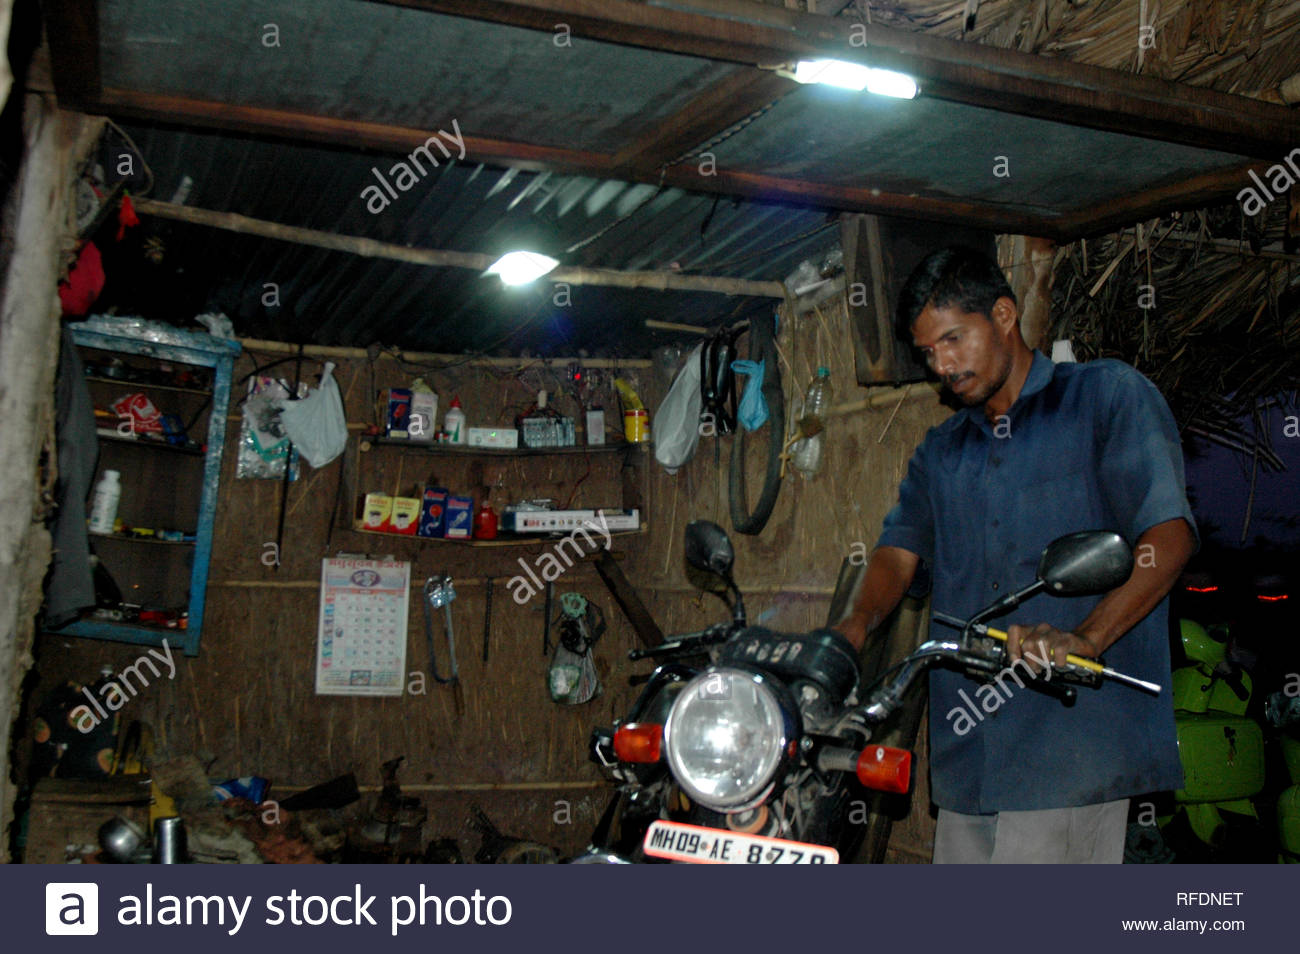 """Automobile mechanic Ashok Awati fixes a motorcycle using light generated by his indigenously designed windmill, in his shanty at a village on the outskirts of Sangli, Maharashtra, India on May 8, 2013. At being told by the electricity department that he could get power to his home only if he could pay for erecting electric poles, Ashok Awati went ahead and designed his own windmill to generate power to light up his house consisting of 8 members of his family. Currently he generates electricity enough to run a television set, a DVD player and five bulbs to light up his residence. """"I spent about - Stock Image"""